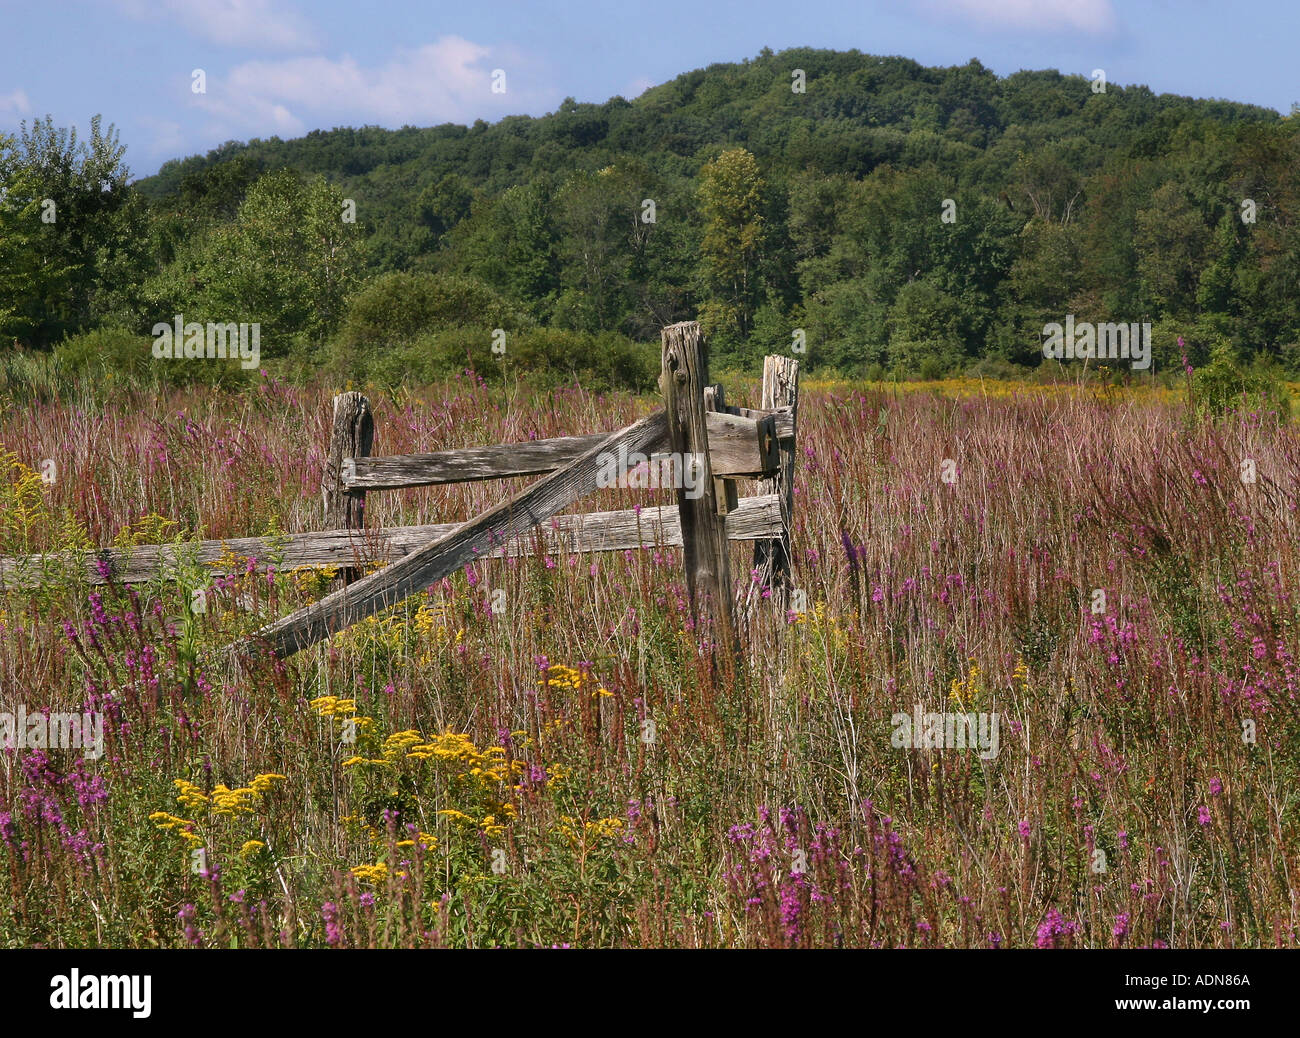 Remnents of farming and livestock in the skylands of New Jersey A beautiful field of wildflowers Stock Photo